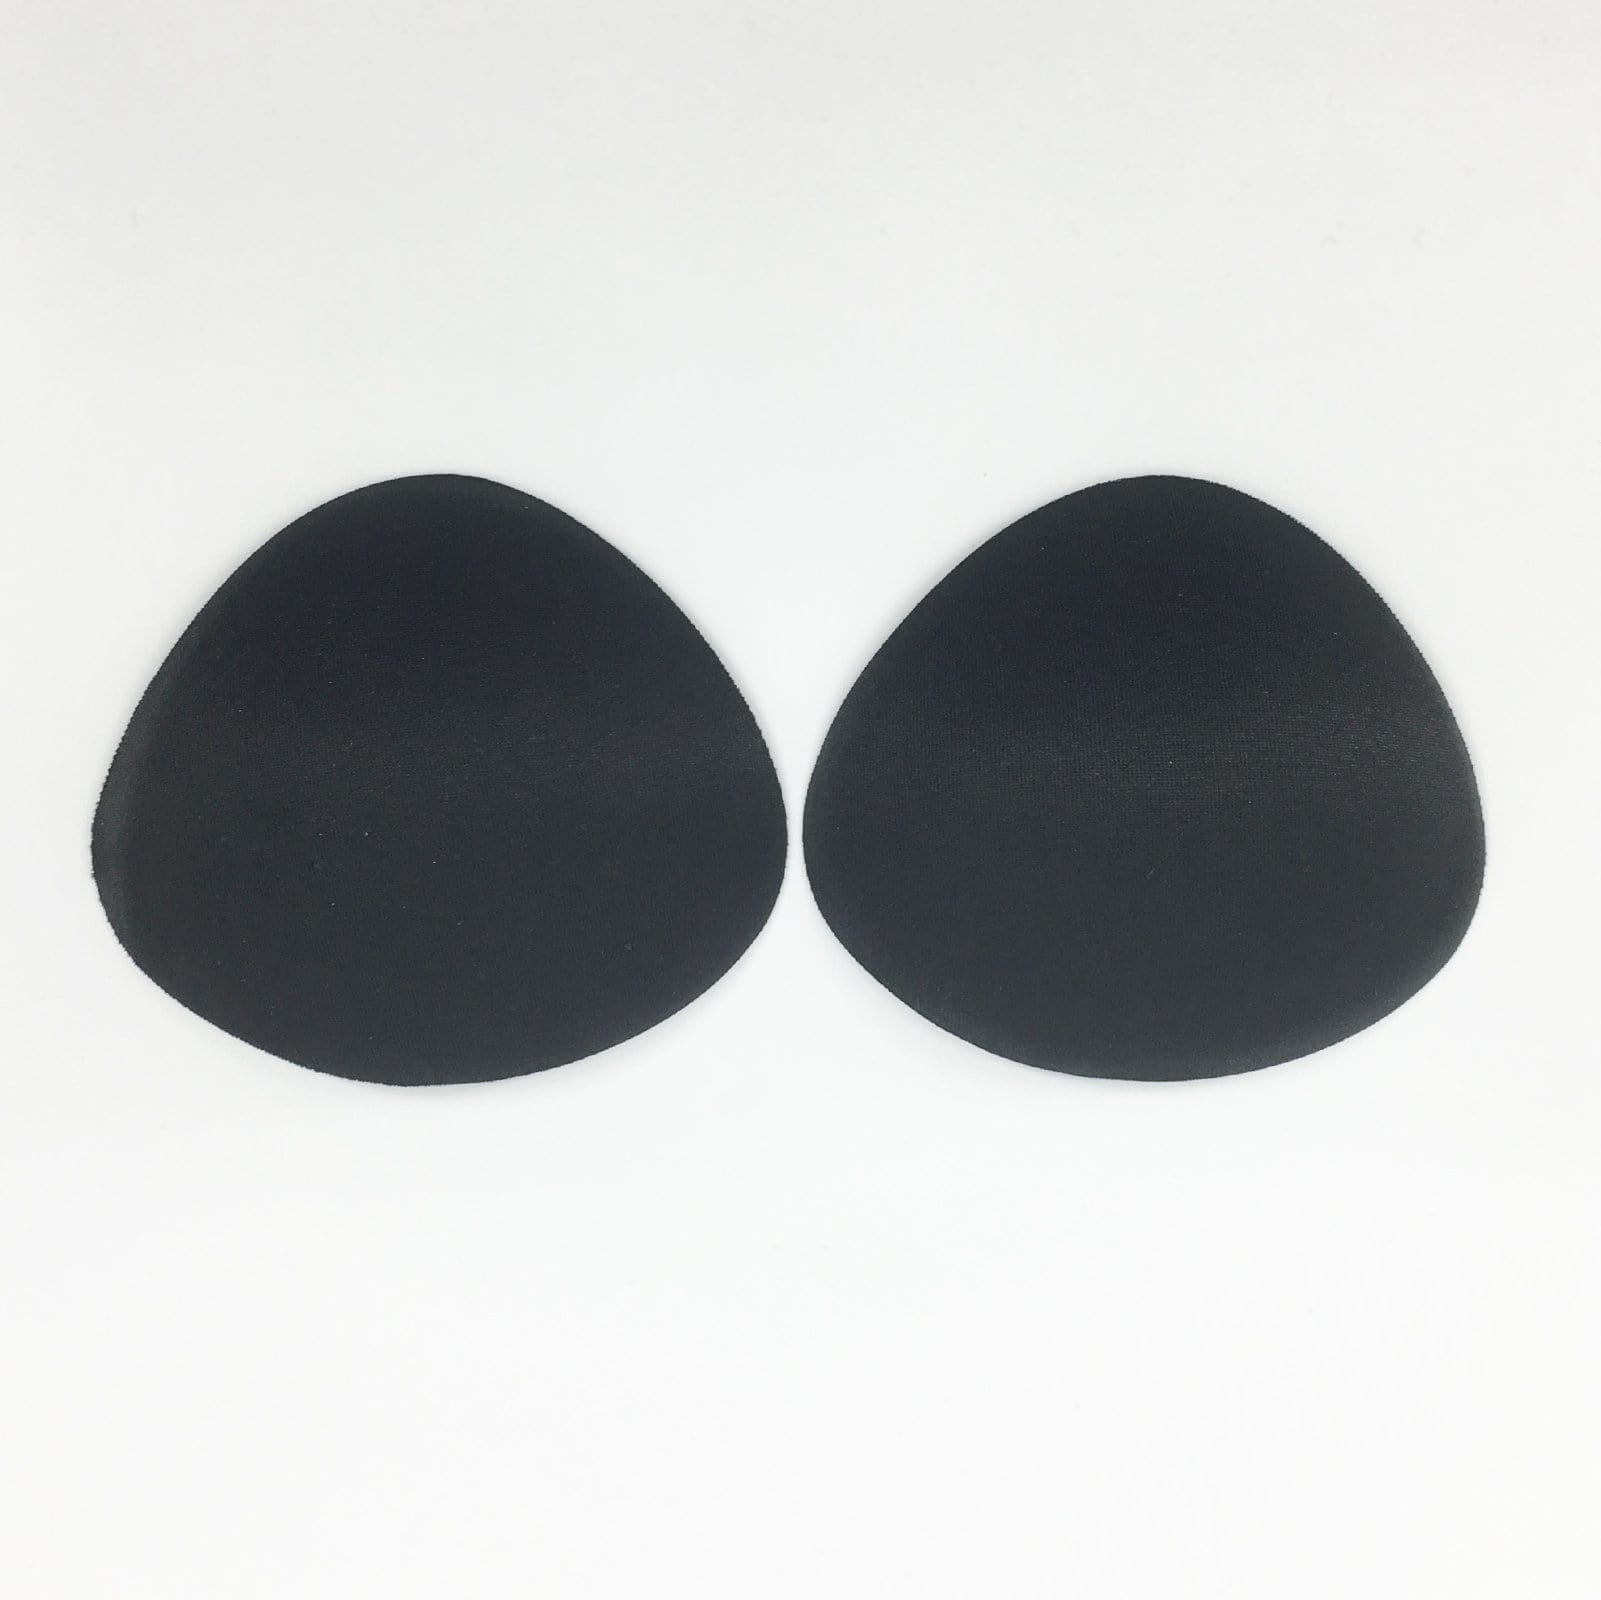 FUNFIT Small Push-Up Bra Padding Inserts In Black